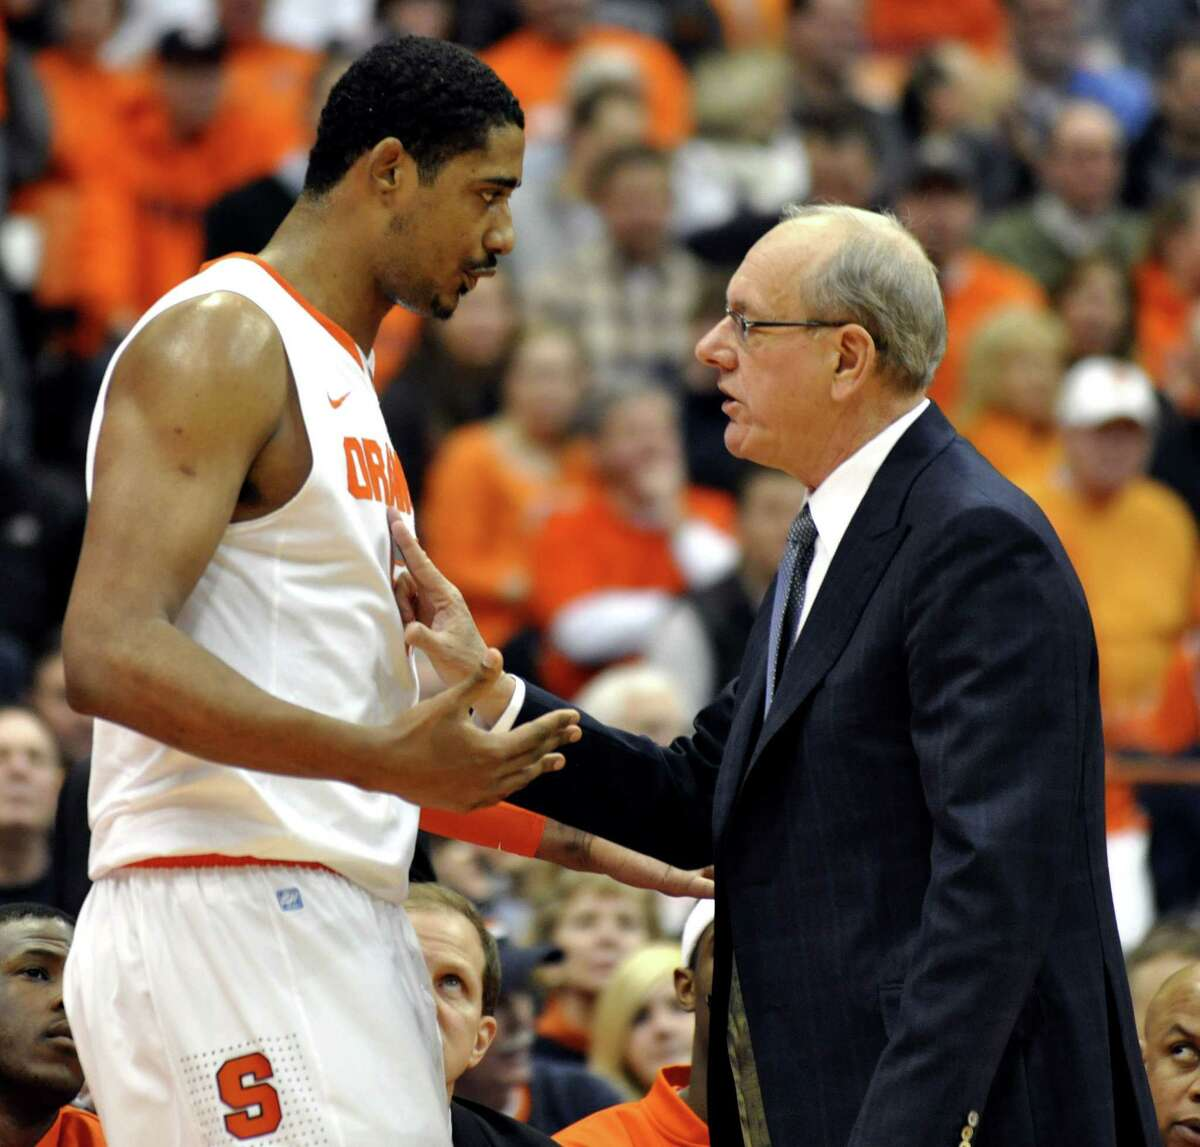 In this Jan. 15, 2011 photo, Syracuse head coach Jim Boeheim, right, talks with Fab Melo during the first half against Cincinnati in an NCAA college basketball game in Syracuse, N.Y.